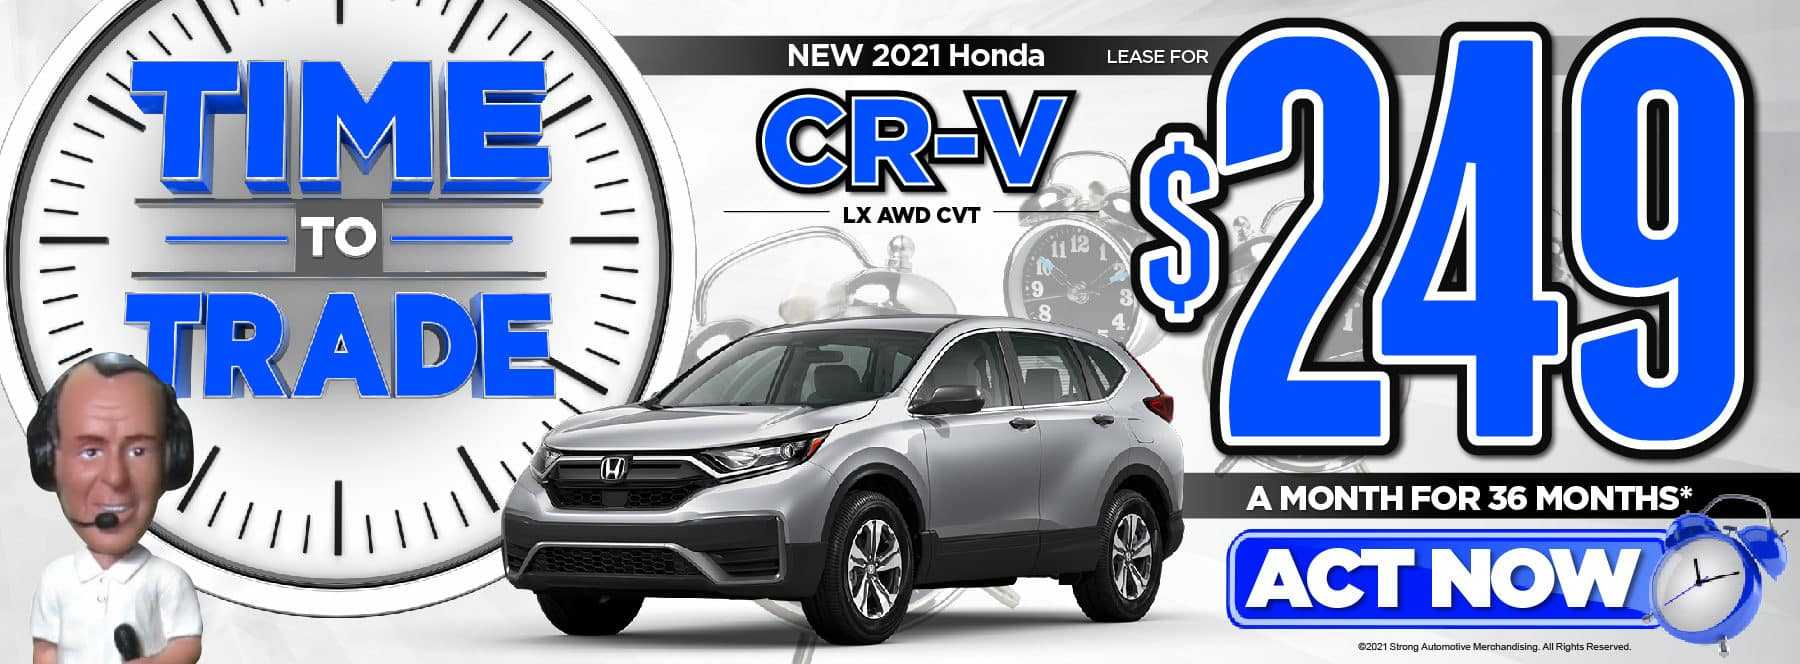 New 2021 Honda CR-V LX Lease for $249/Mo* Act Now